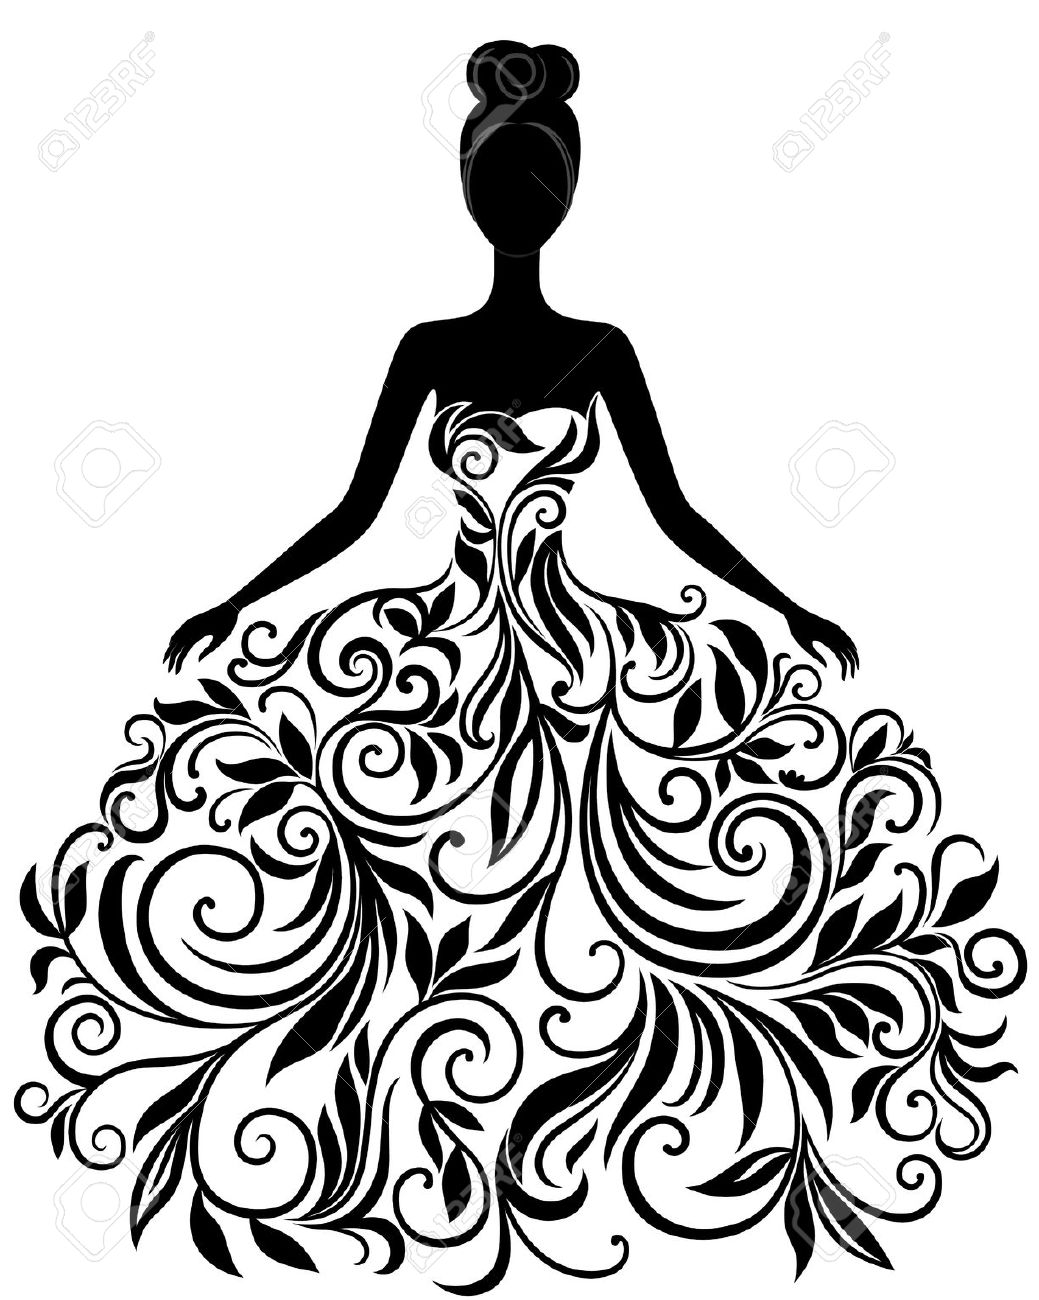 dress silhouette at getdrawings com free for personal use dress rh getdrawings com wedding dress clipart vector wedding dress clipart png